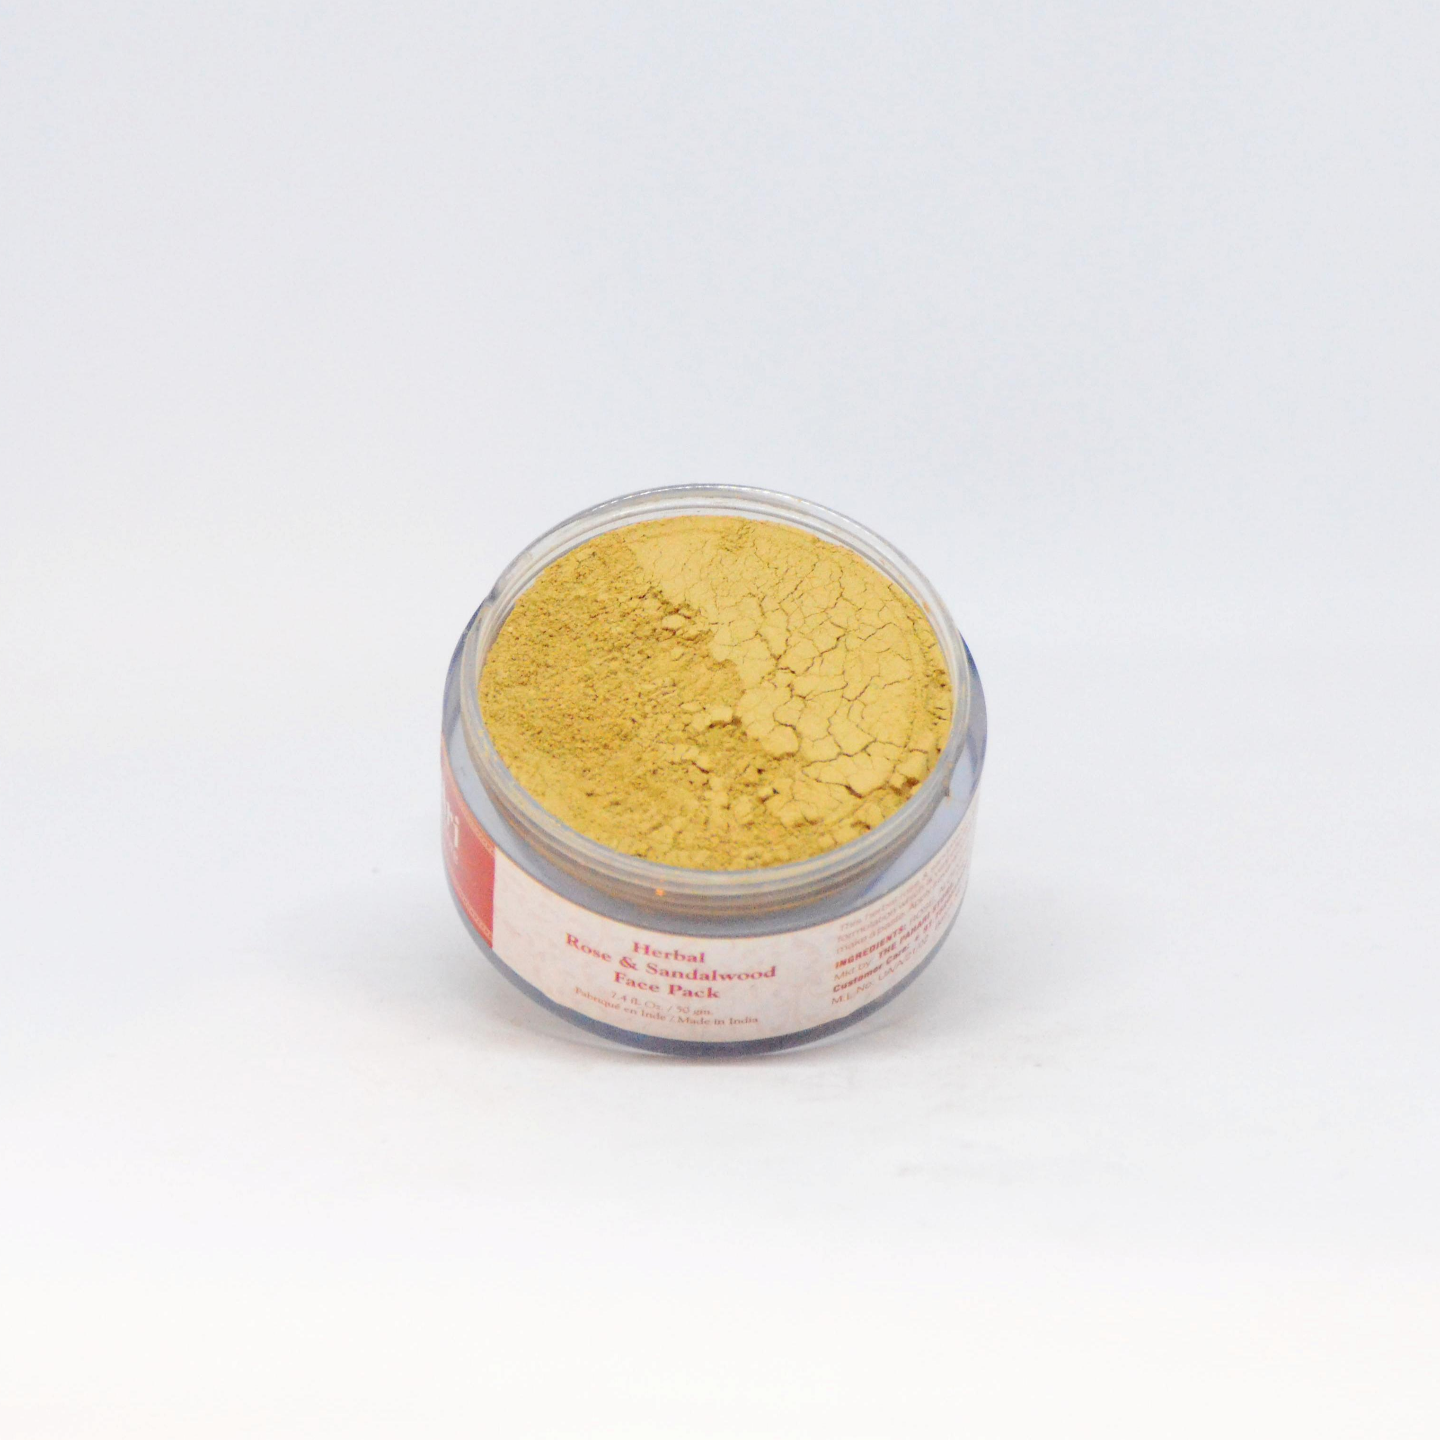 Rose & Sandalwood Face Pack